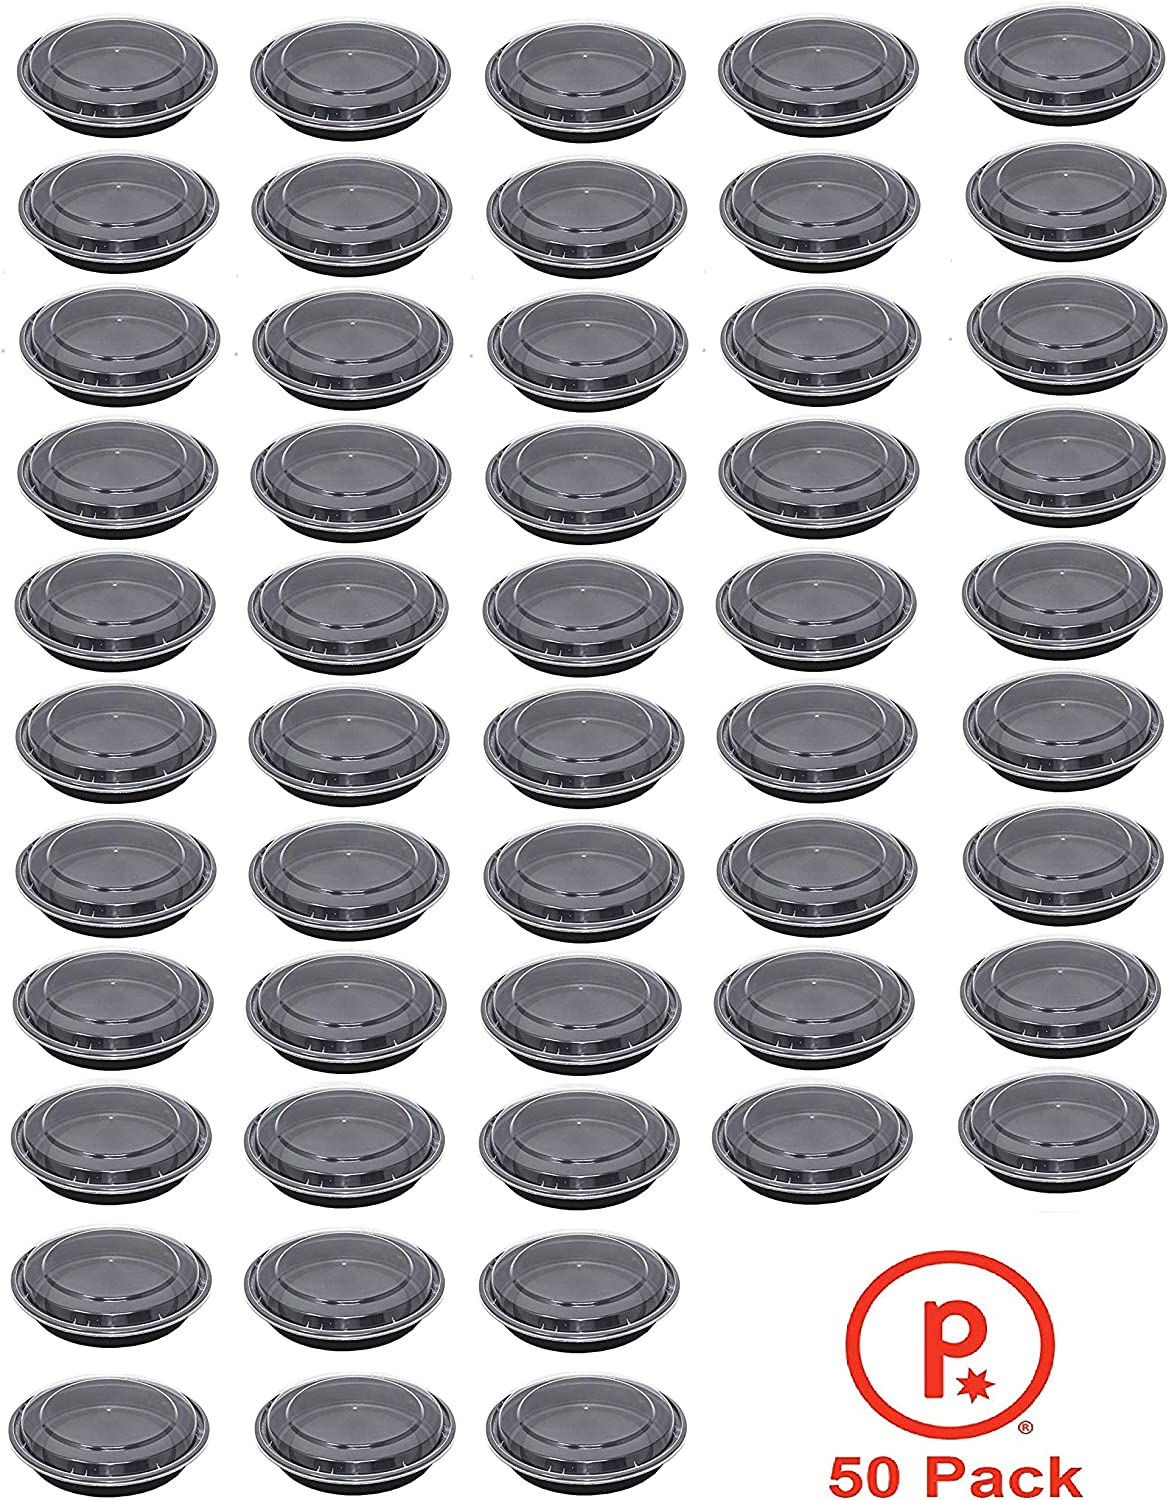 Meal Prep Plastic Microwavable Food containers with Lids Size 24 oz Black Bowls with Clear Lids BPA Free Food Grade Premium Quality Freezer and Dishwasher Safe Reusable Storage Containers (50)